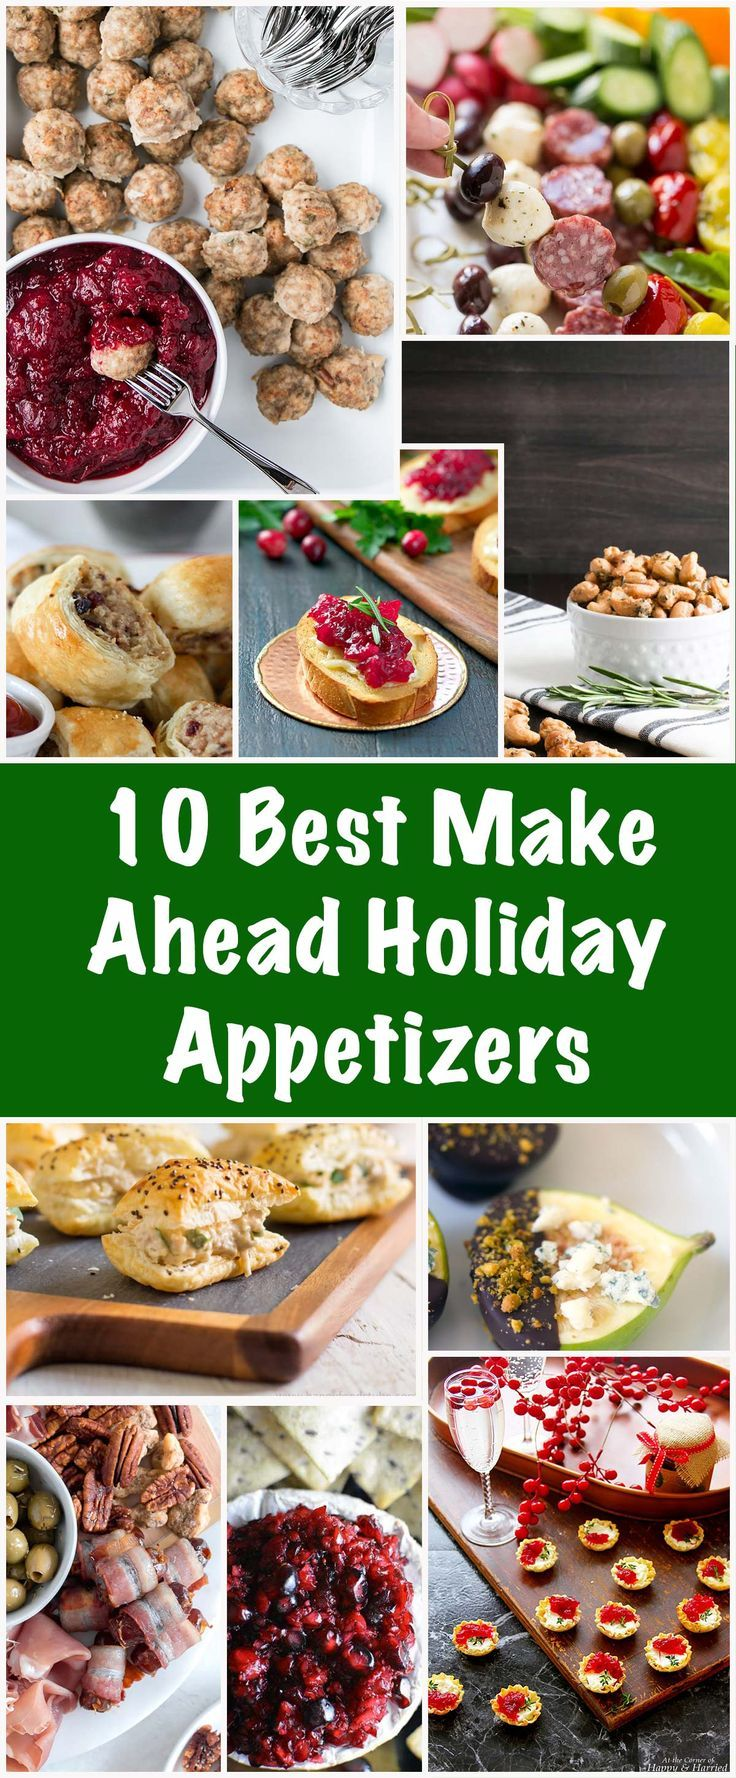 10 best make ahead holiday appetizers recipes recipe 10 best make ahead holiday appetizers recipes recipe appetizers apps party forumfinder Image collections